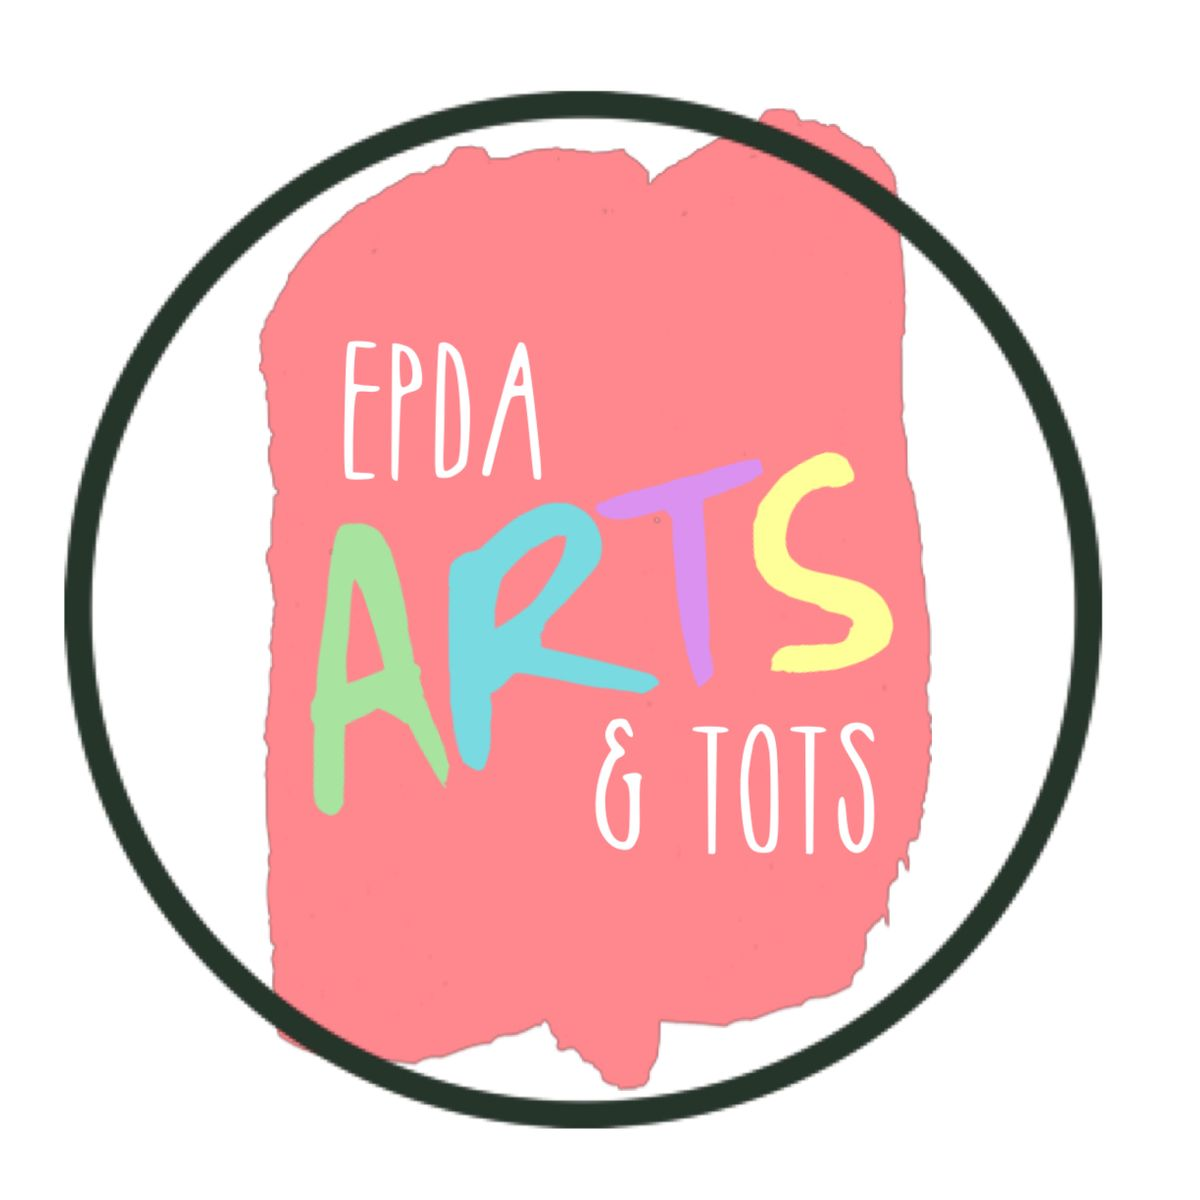 arts and tots logo.jpg